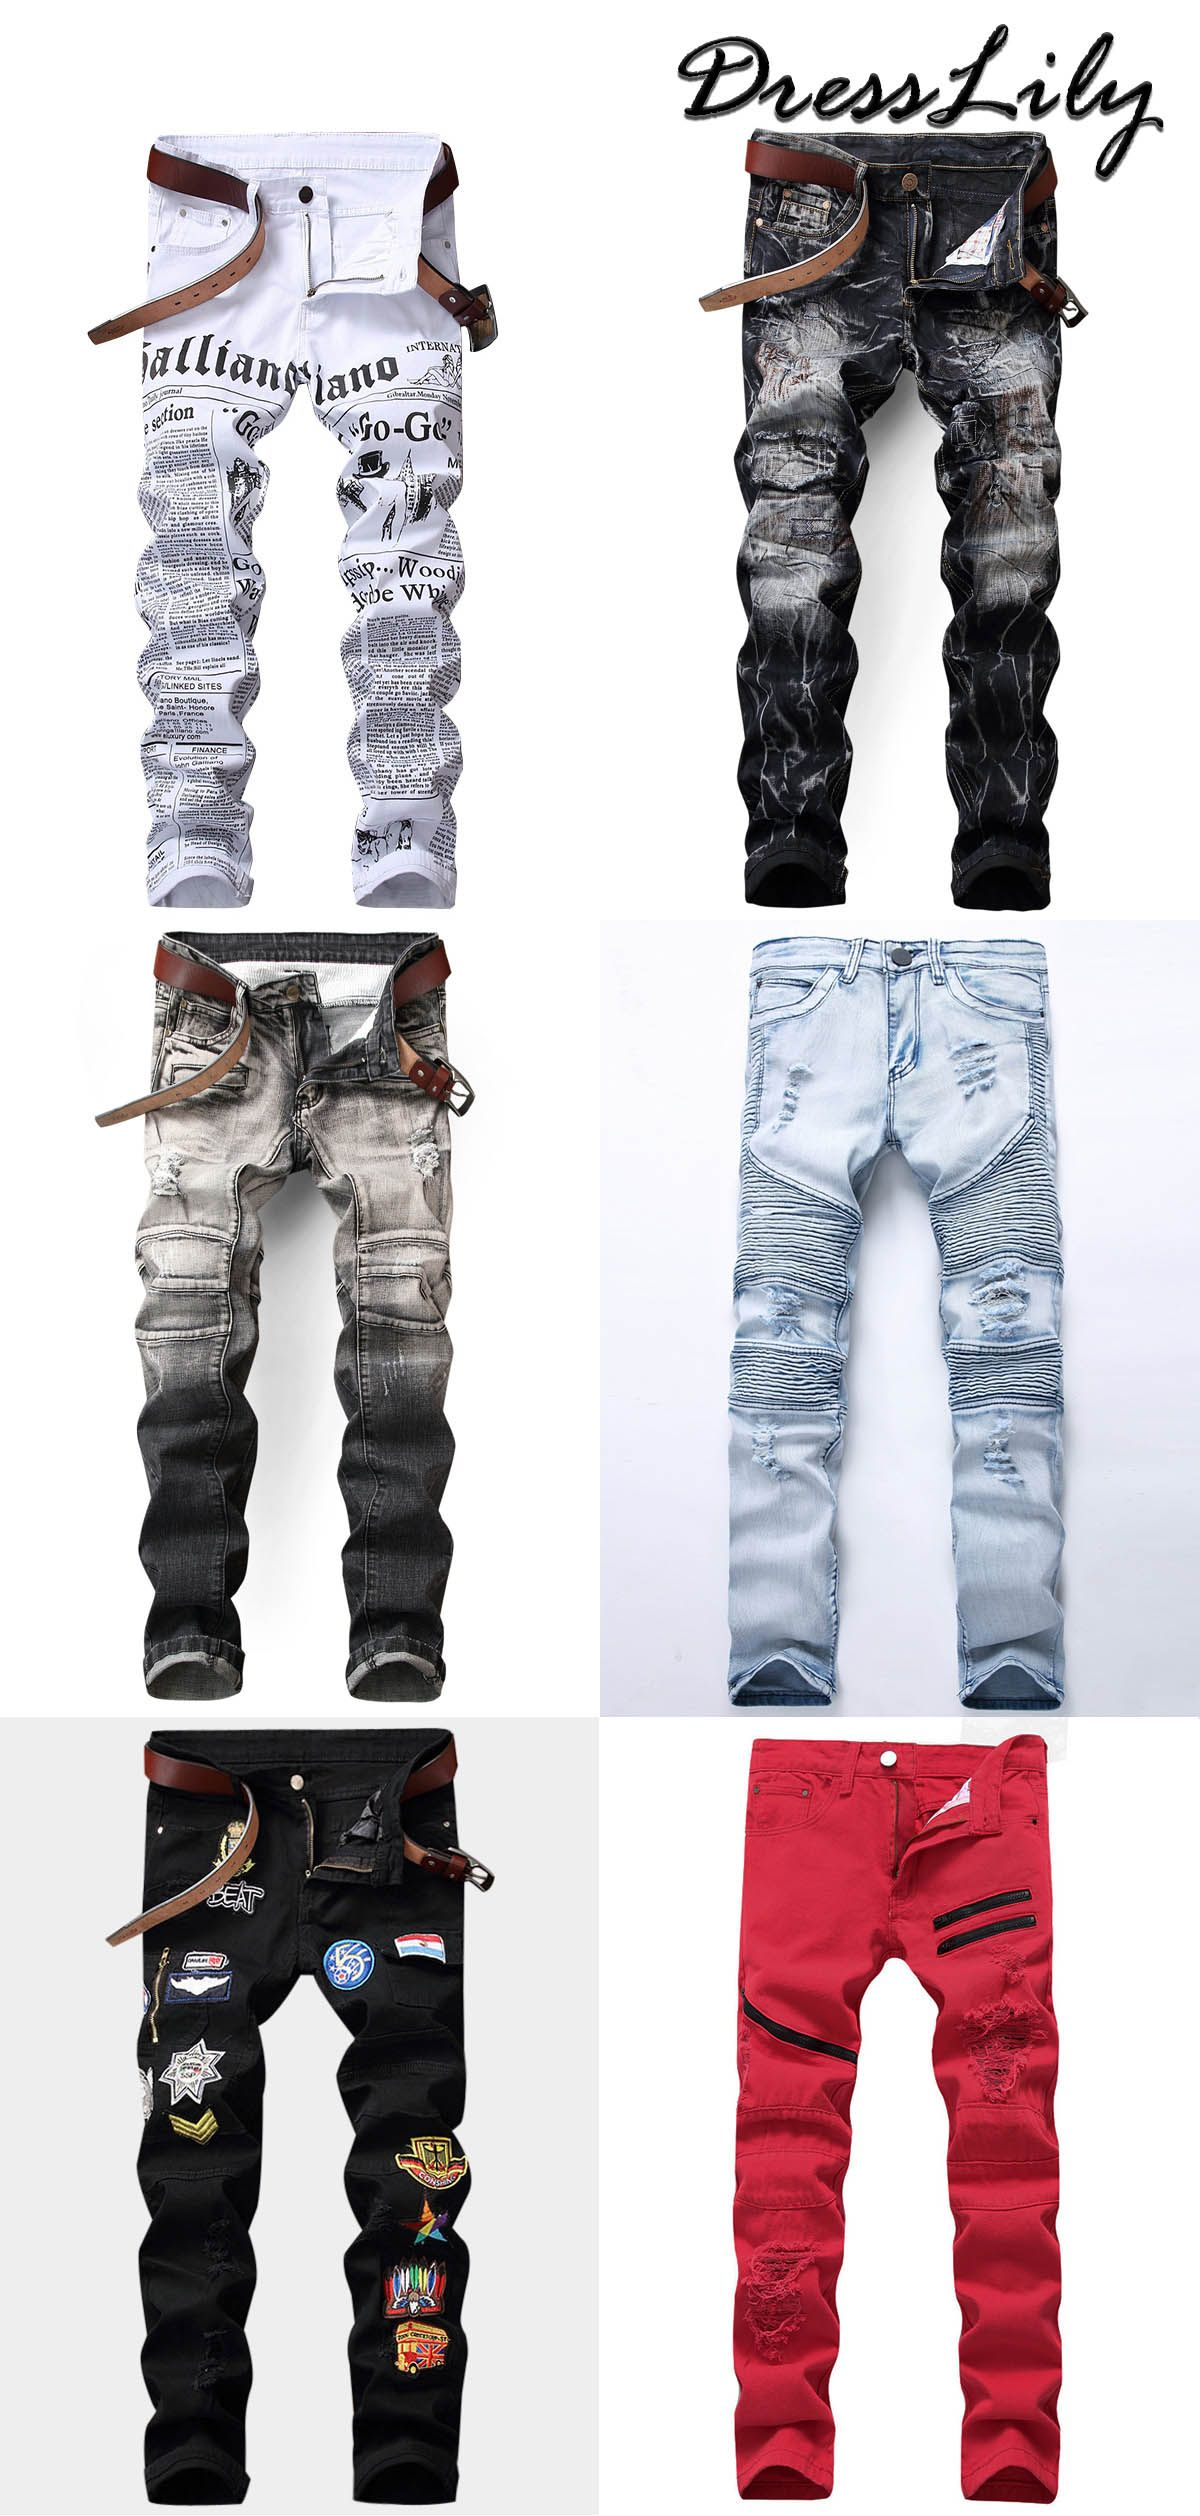 Buy the latest mens jeans pants at a cheapest price in dresslily.com ... 819ad4df5ea0b